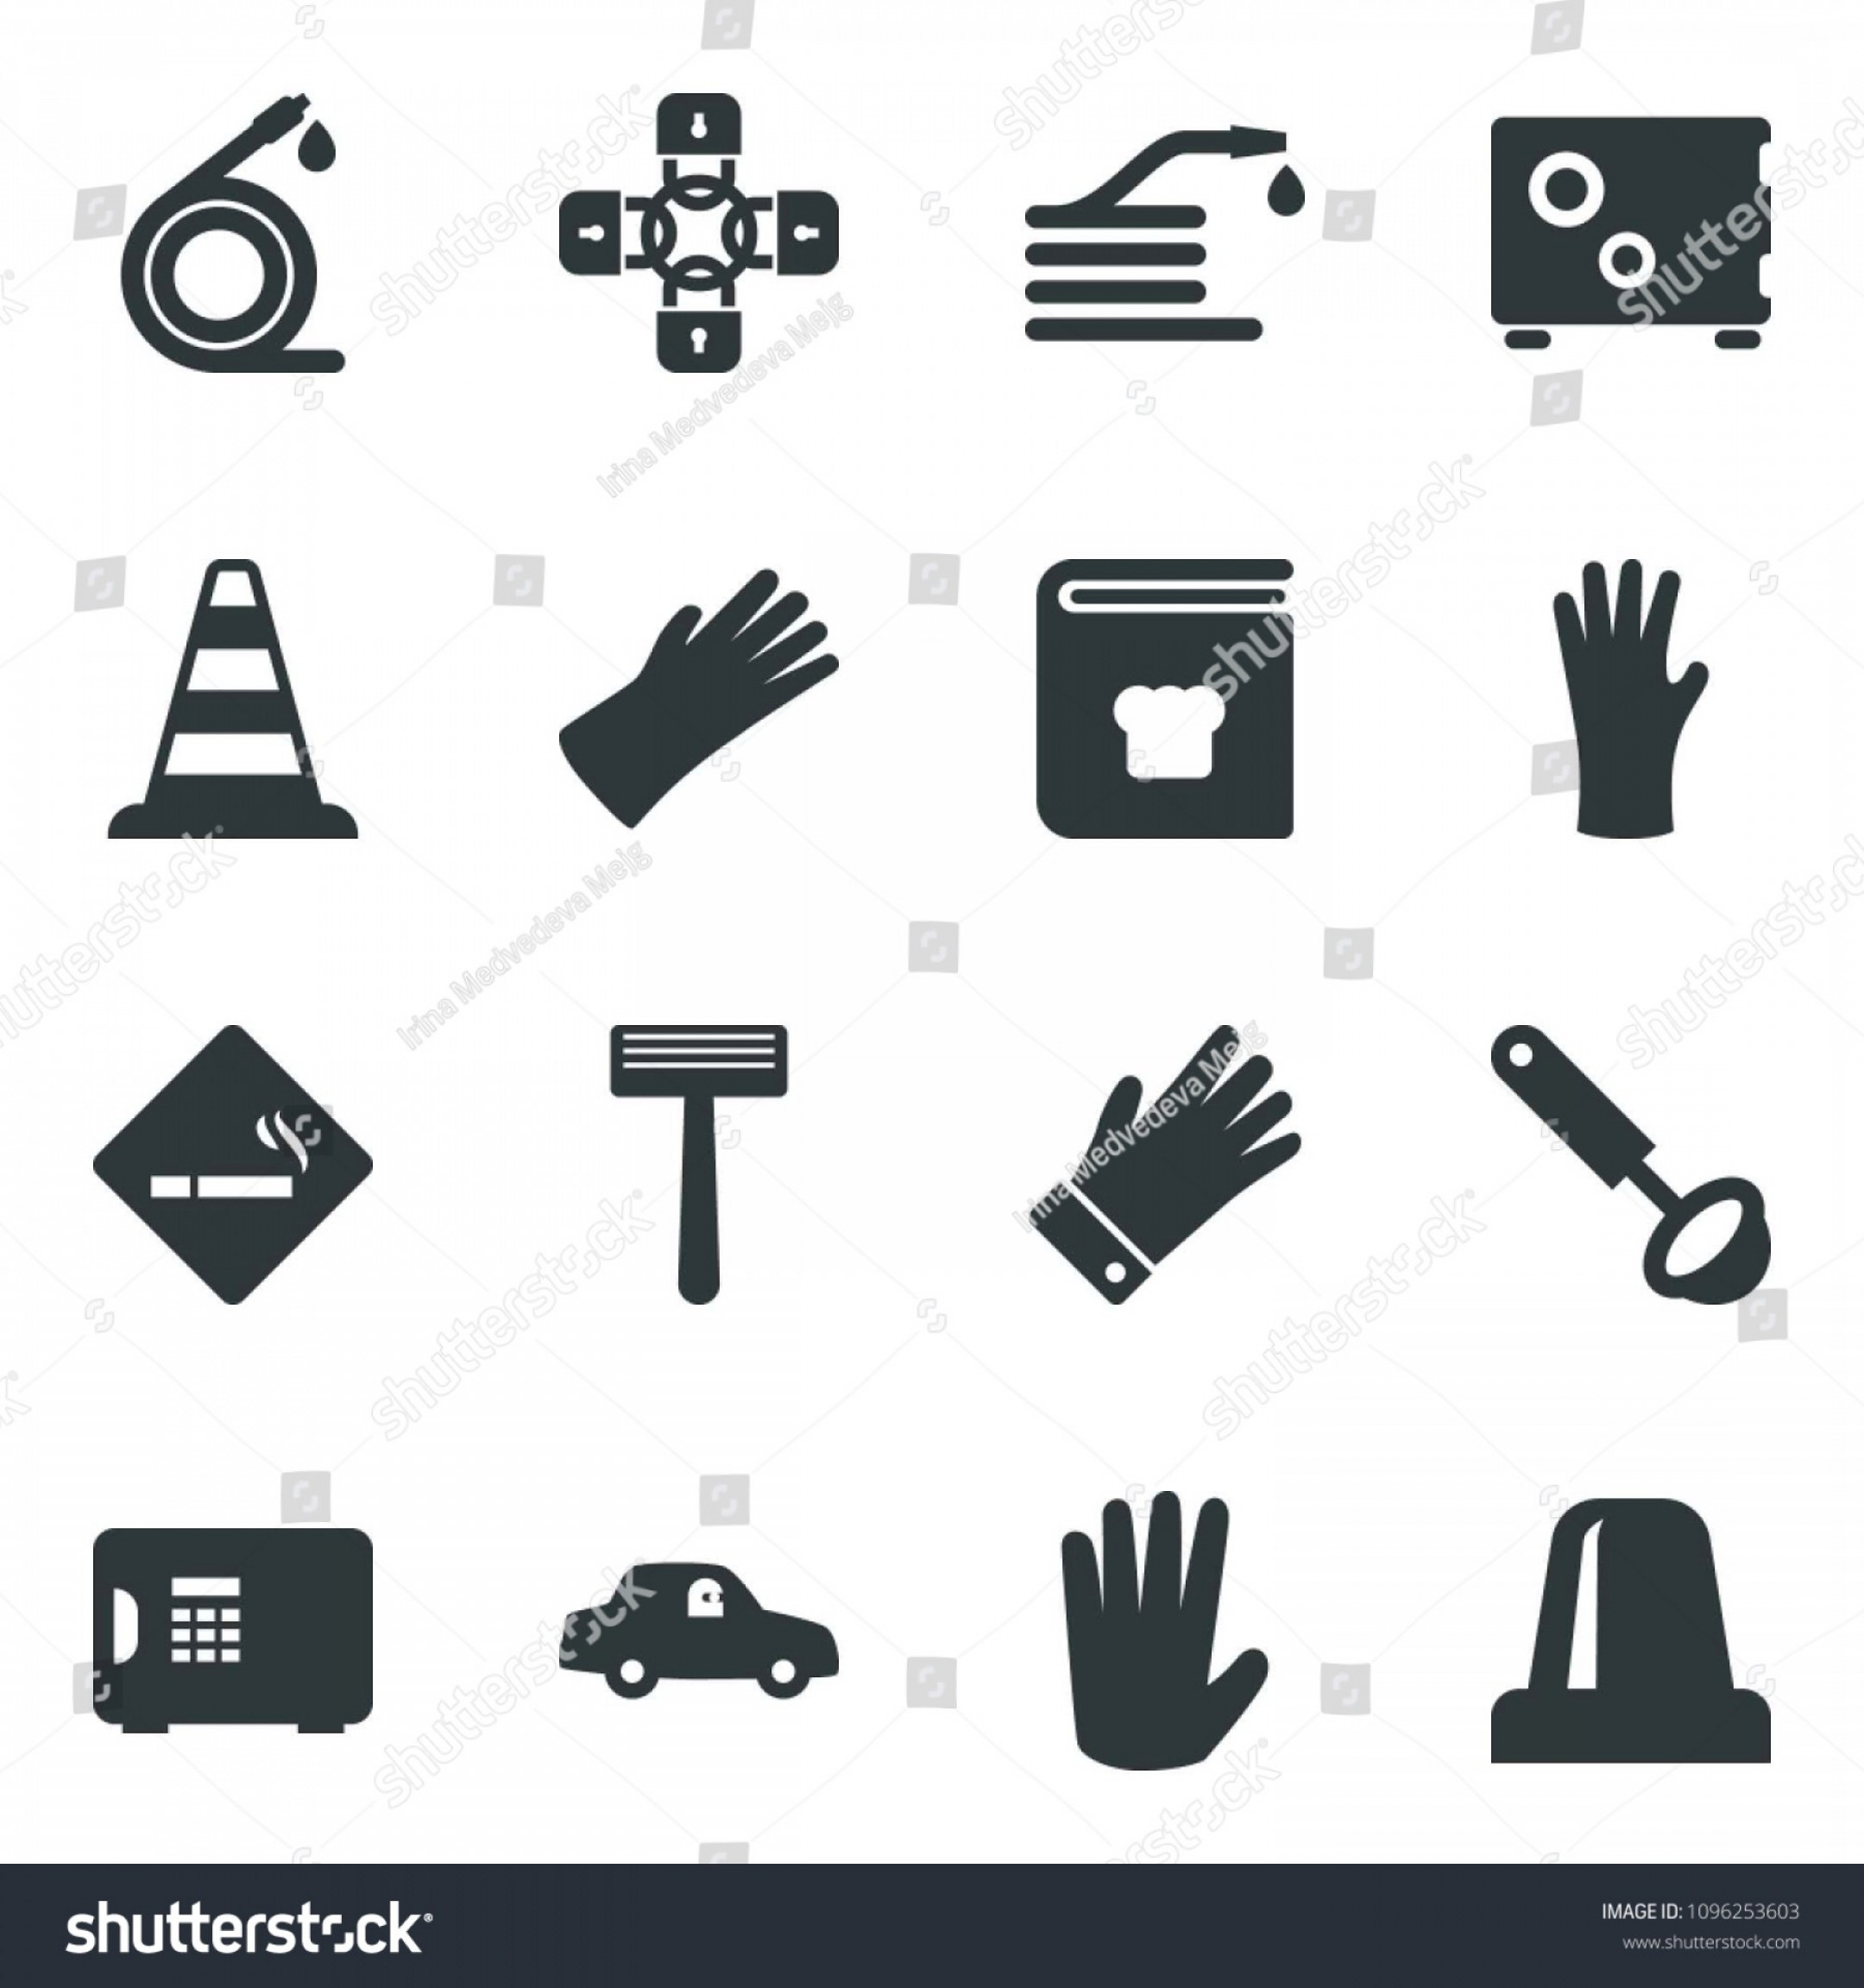 Chain And Lock Glove Vector: Black Vector Icon Set Smoking Place